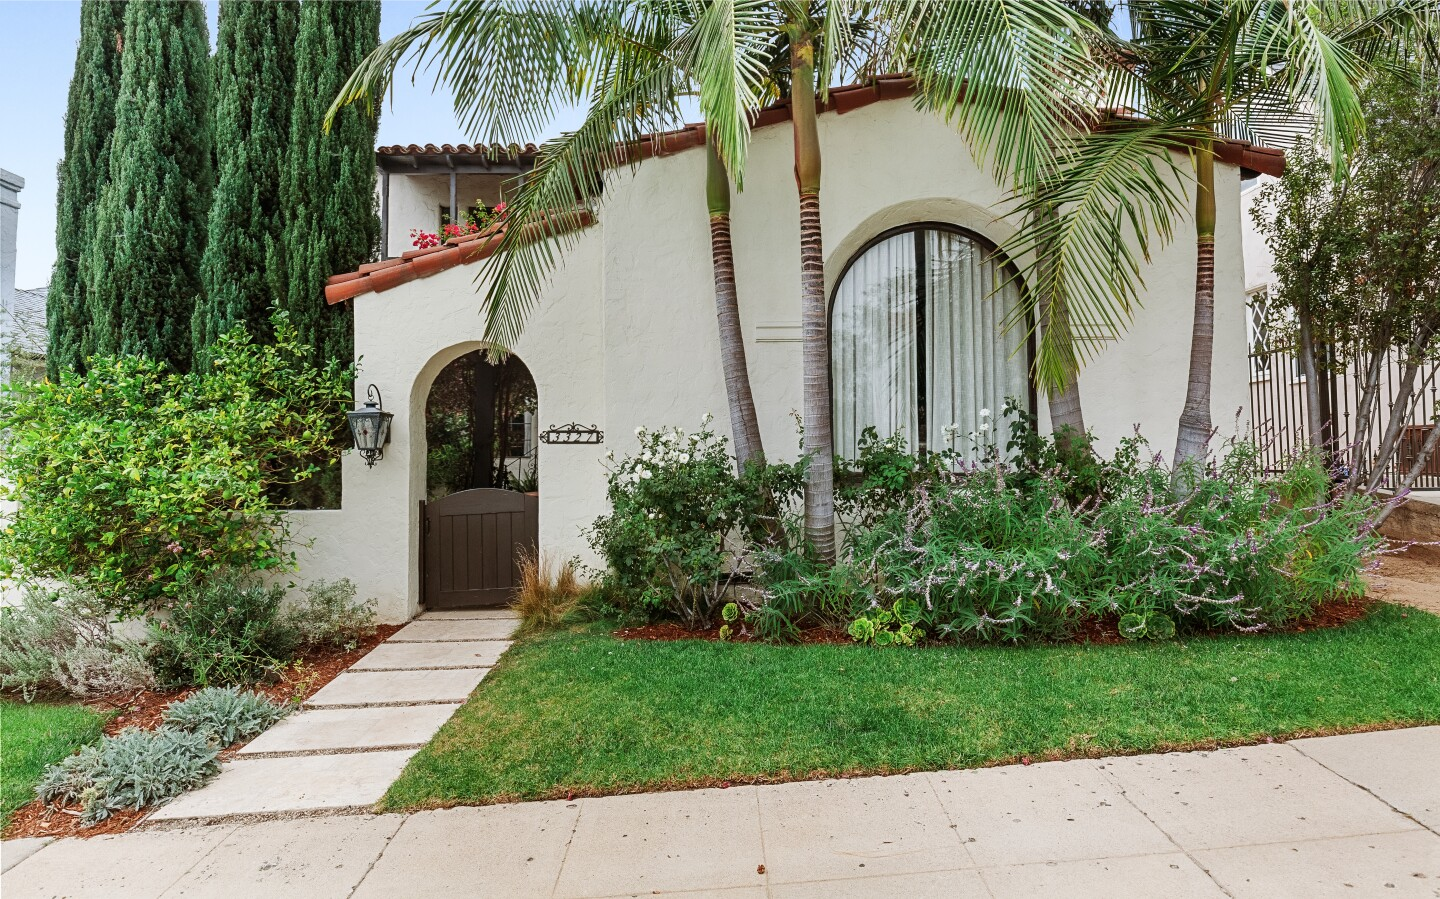 Built in 1932, the designer-done home includes a stylish backyard with a swimming pool and cabana surrounded by vegetable gardens and fruit trees.